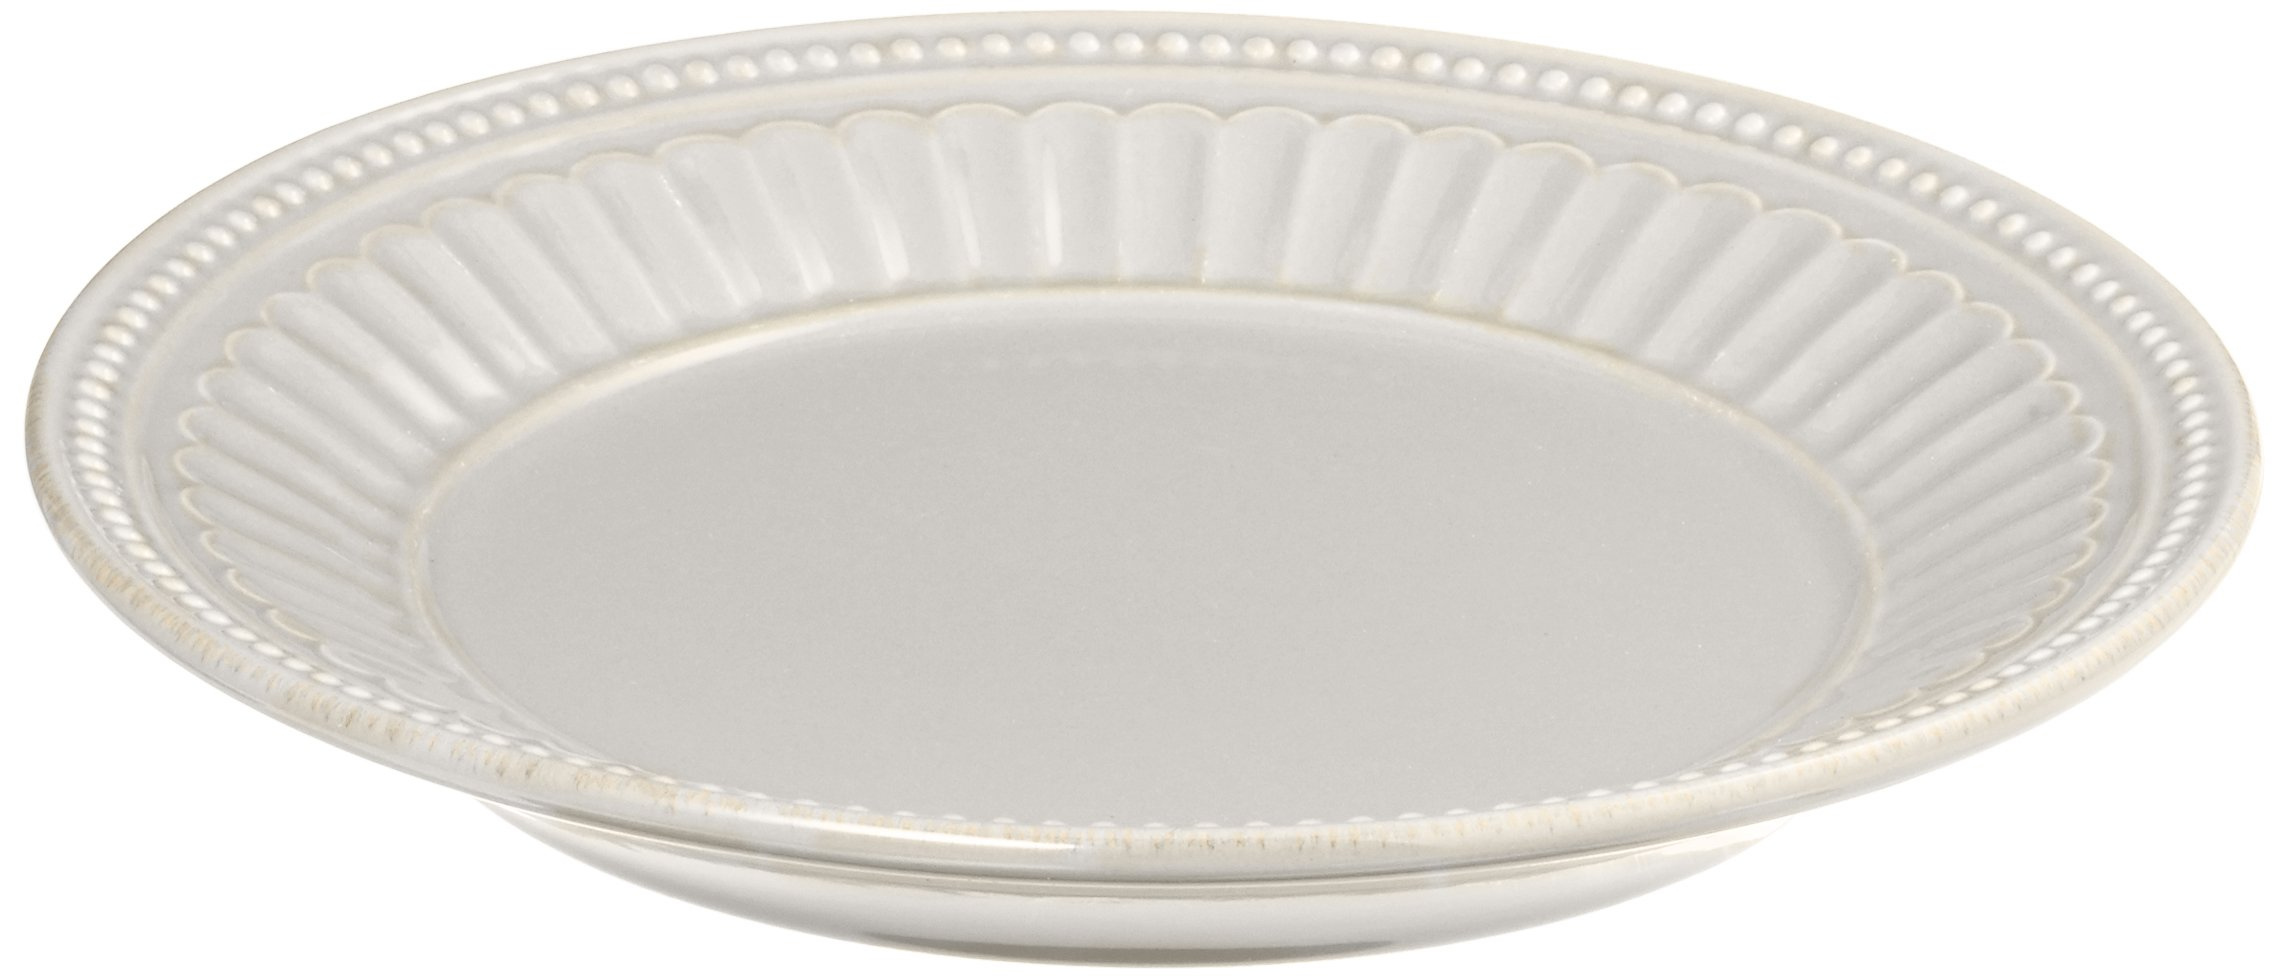 Lenox French Perle Everything Plate, White by Lenox